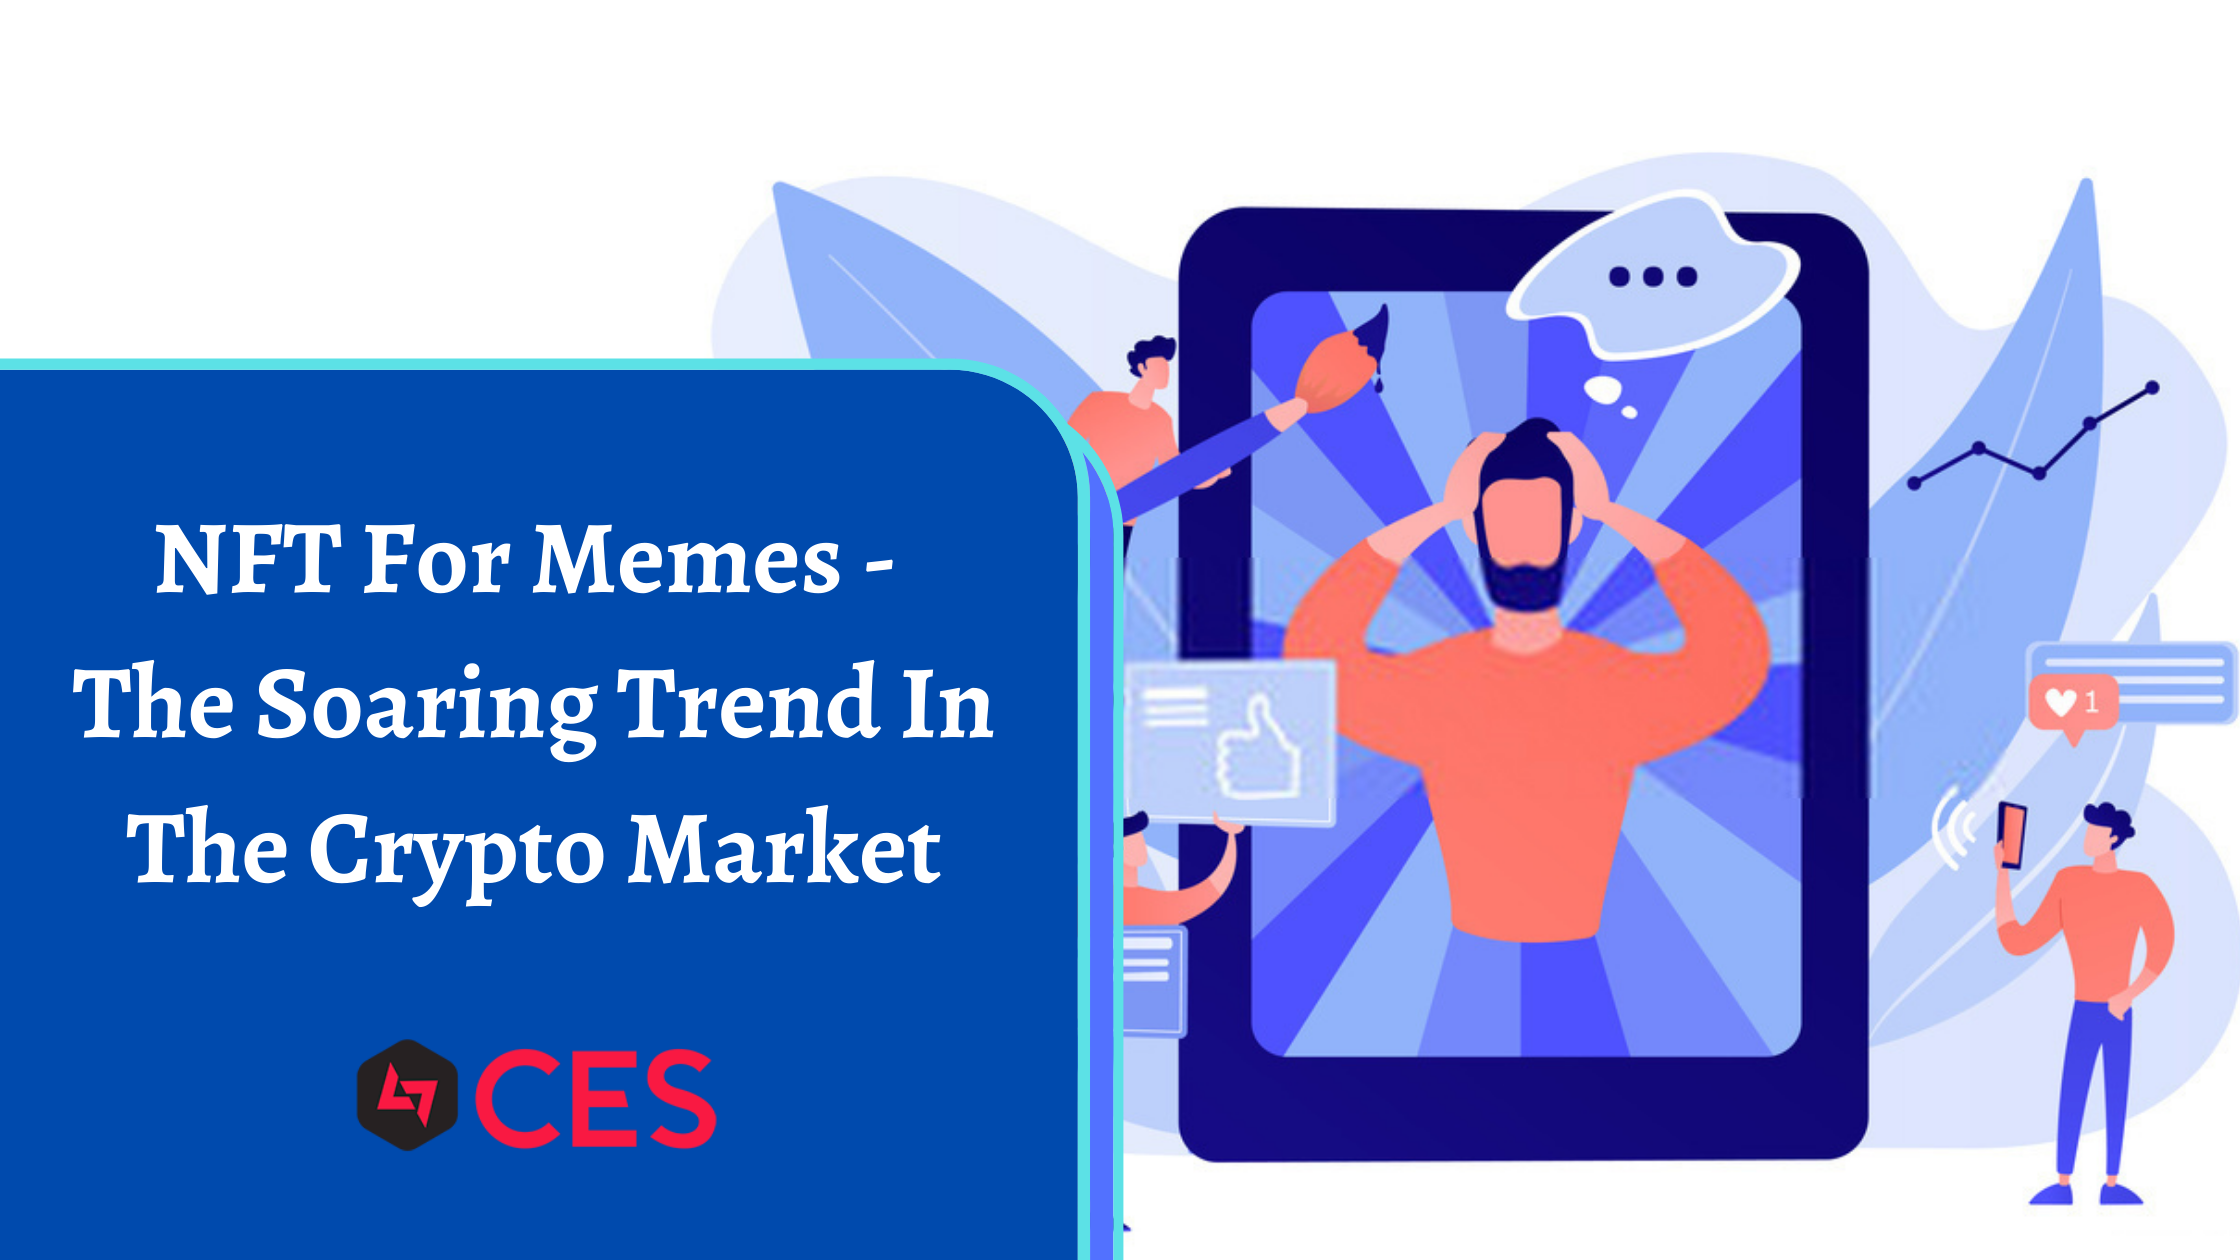 NFT For Memes - The Soaring Trend In The Crypto Market